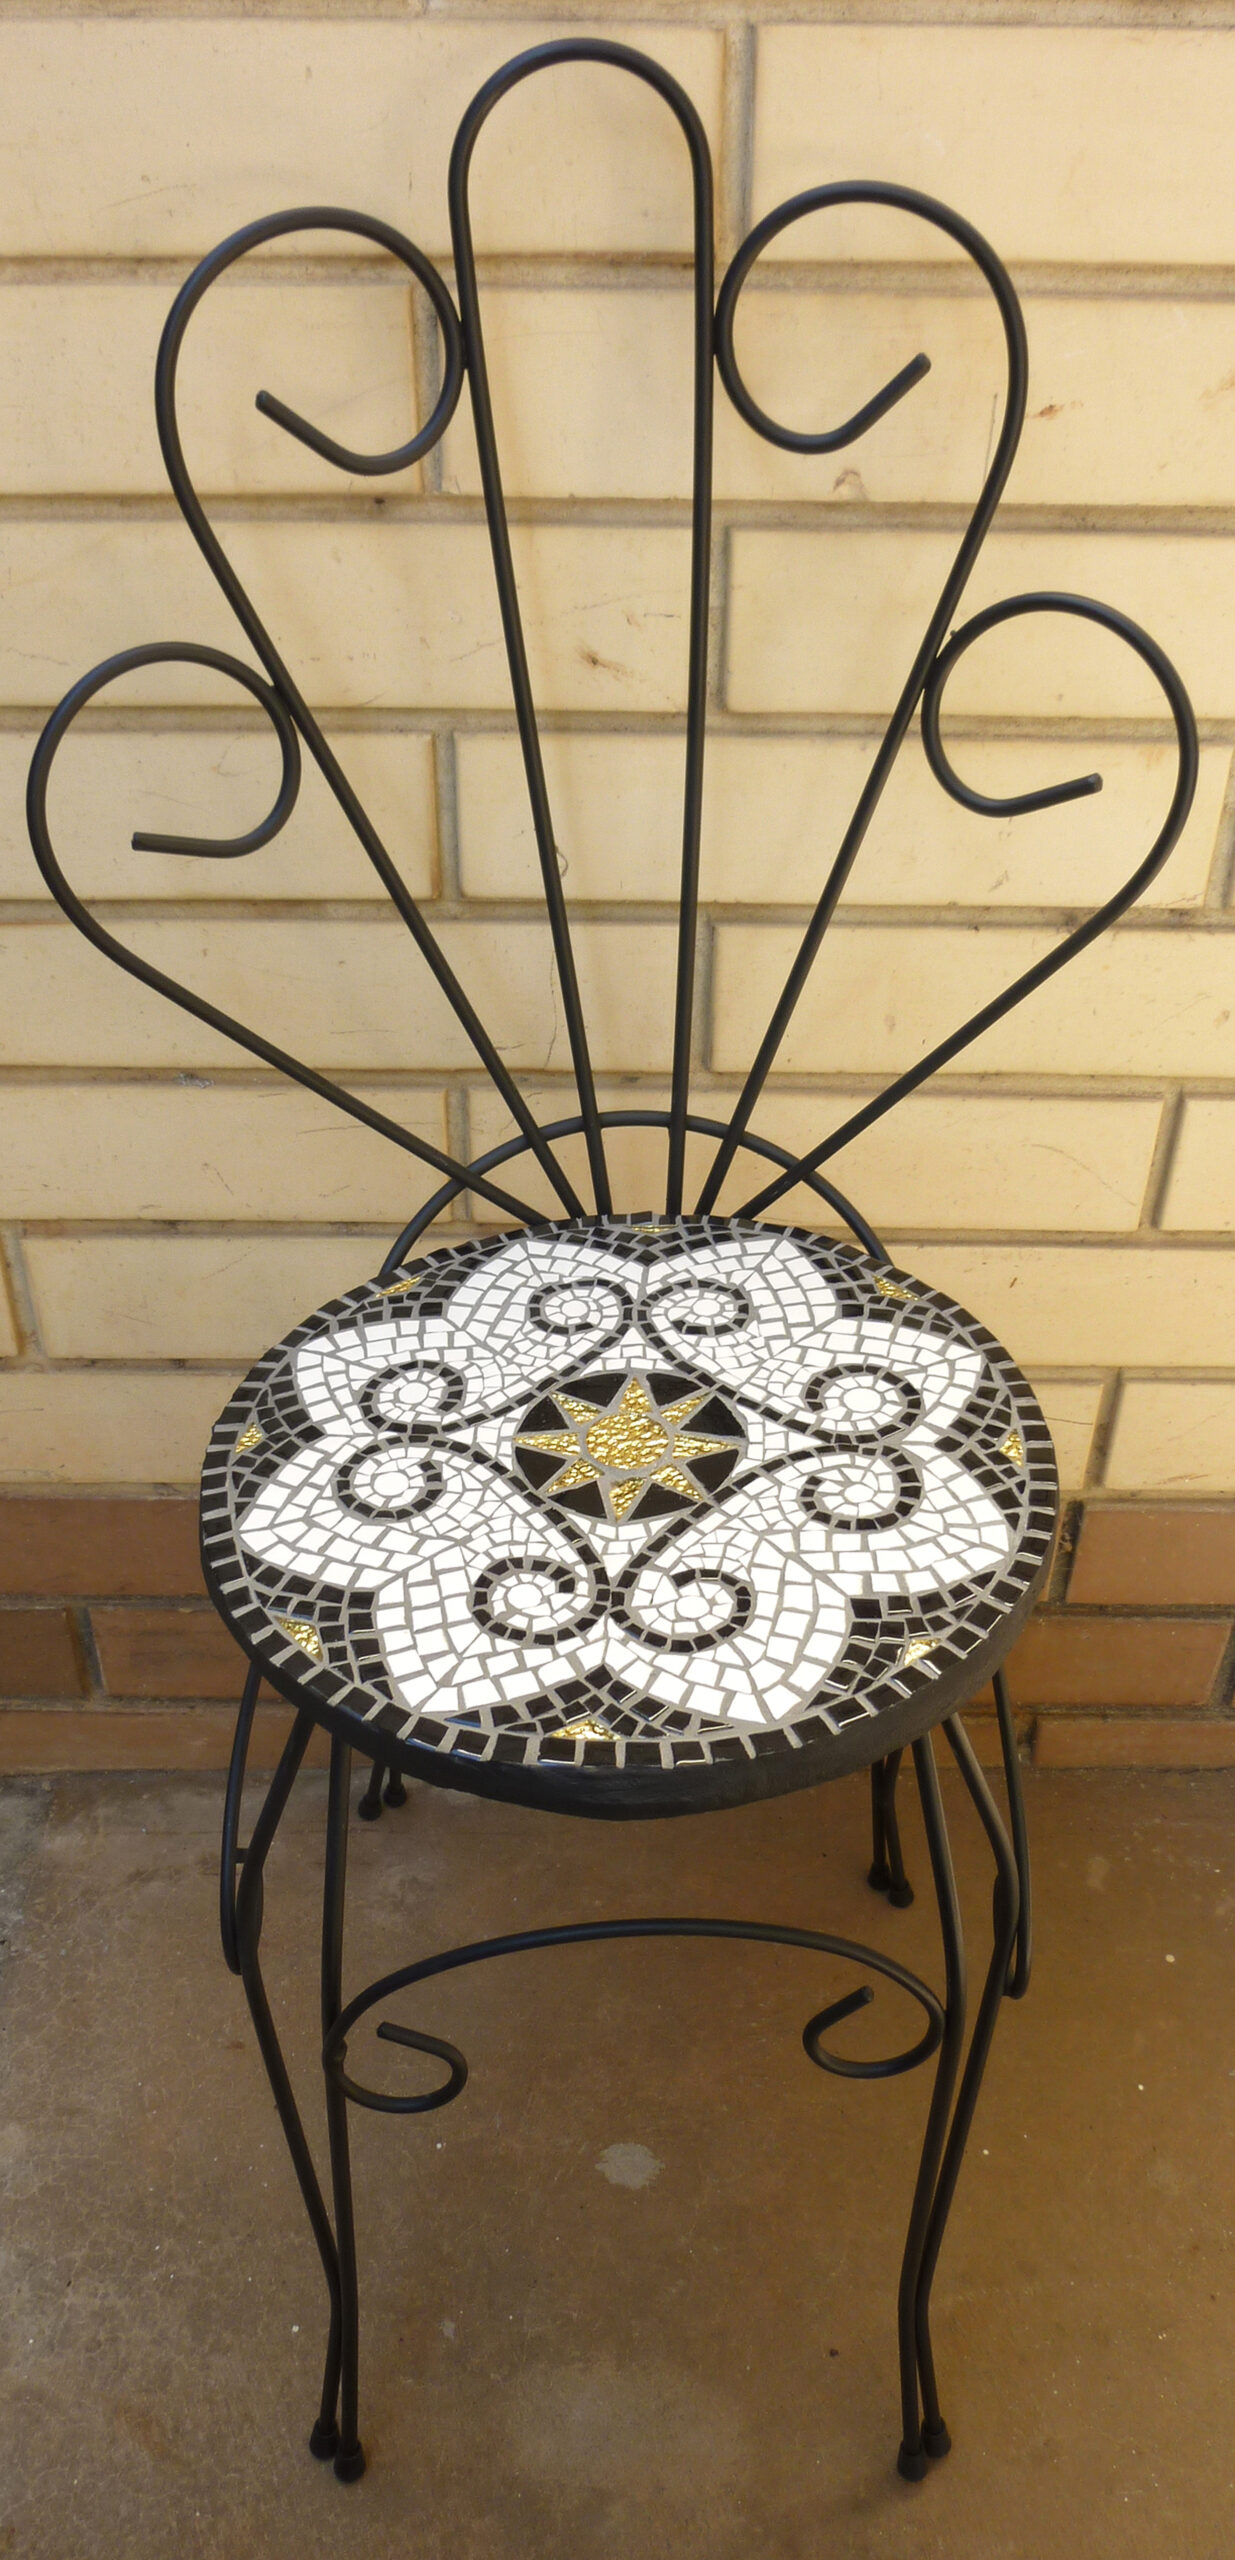 An upcycled wire chair that received a makeover in black & white and a touch of gold